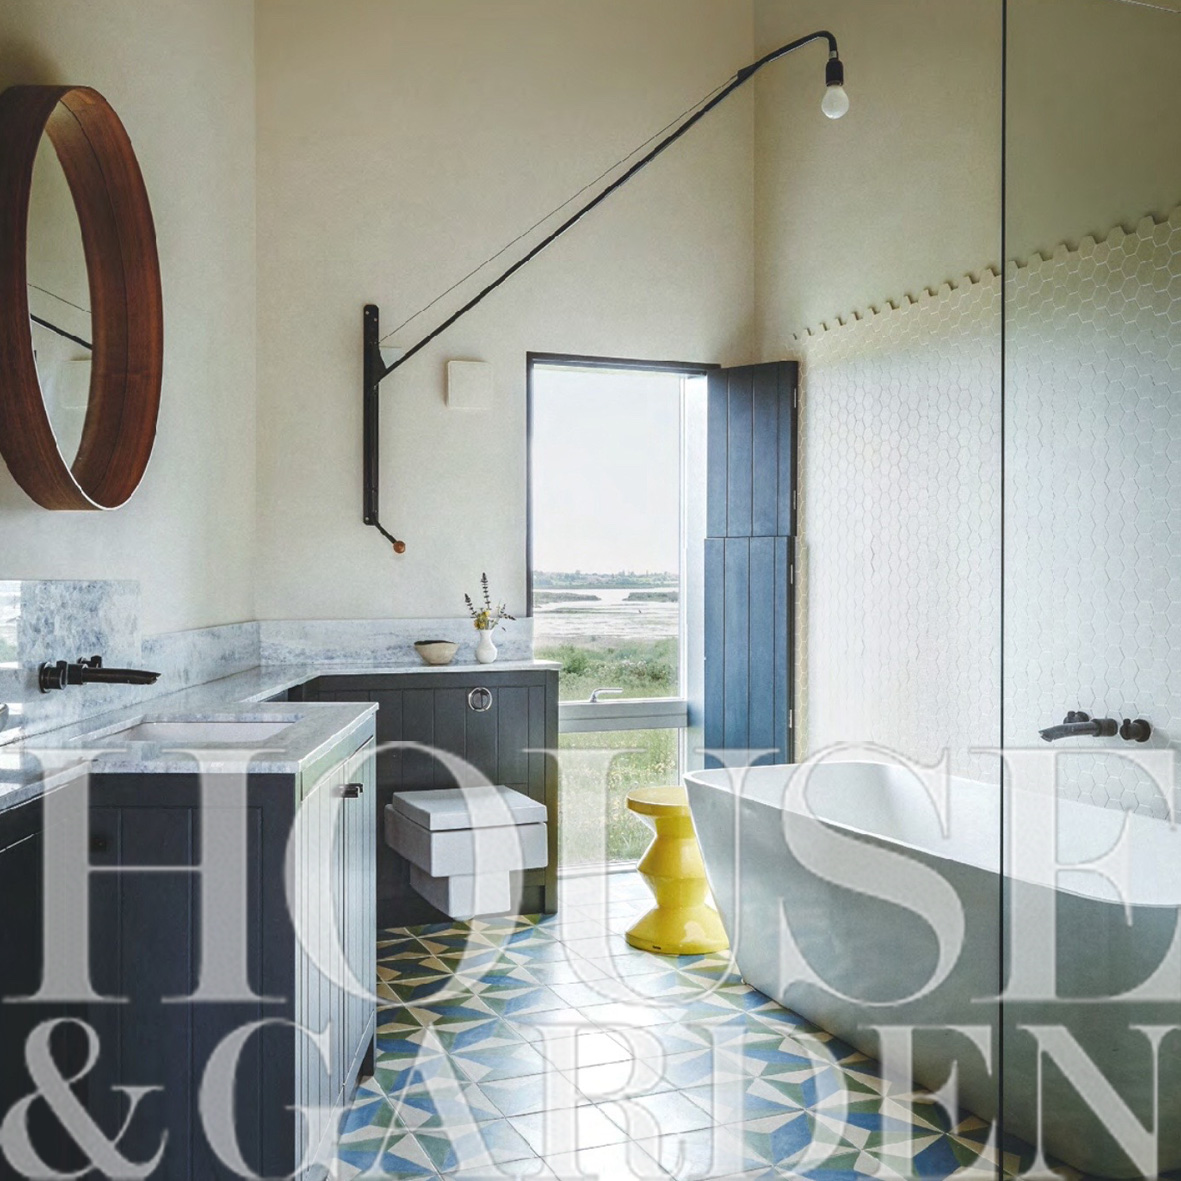 Guest bathroom, geometric encaustic floor tiles, bespoke cabinetry, Prouve light, hexagonal wall tiles with detailed edge